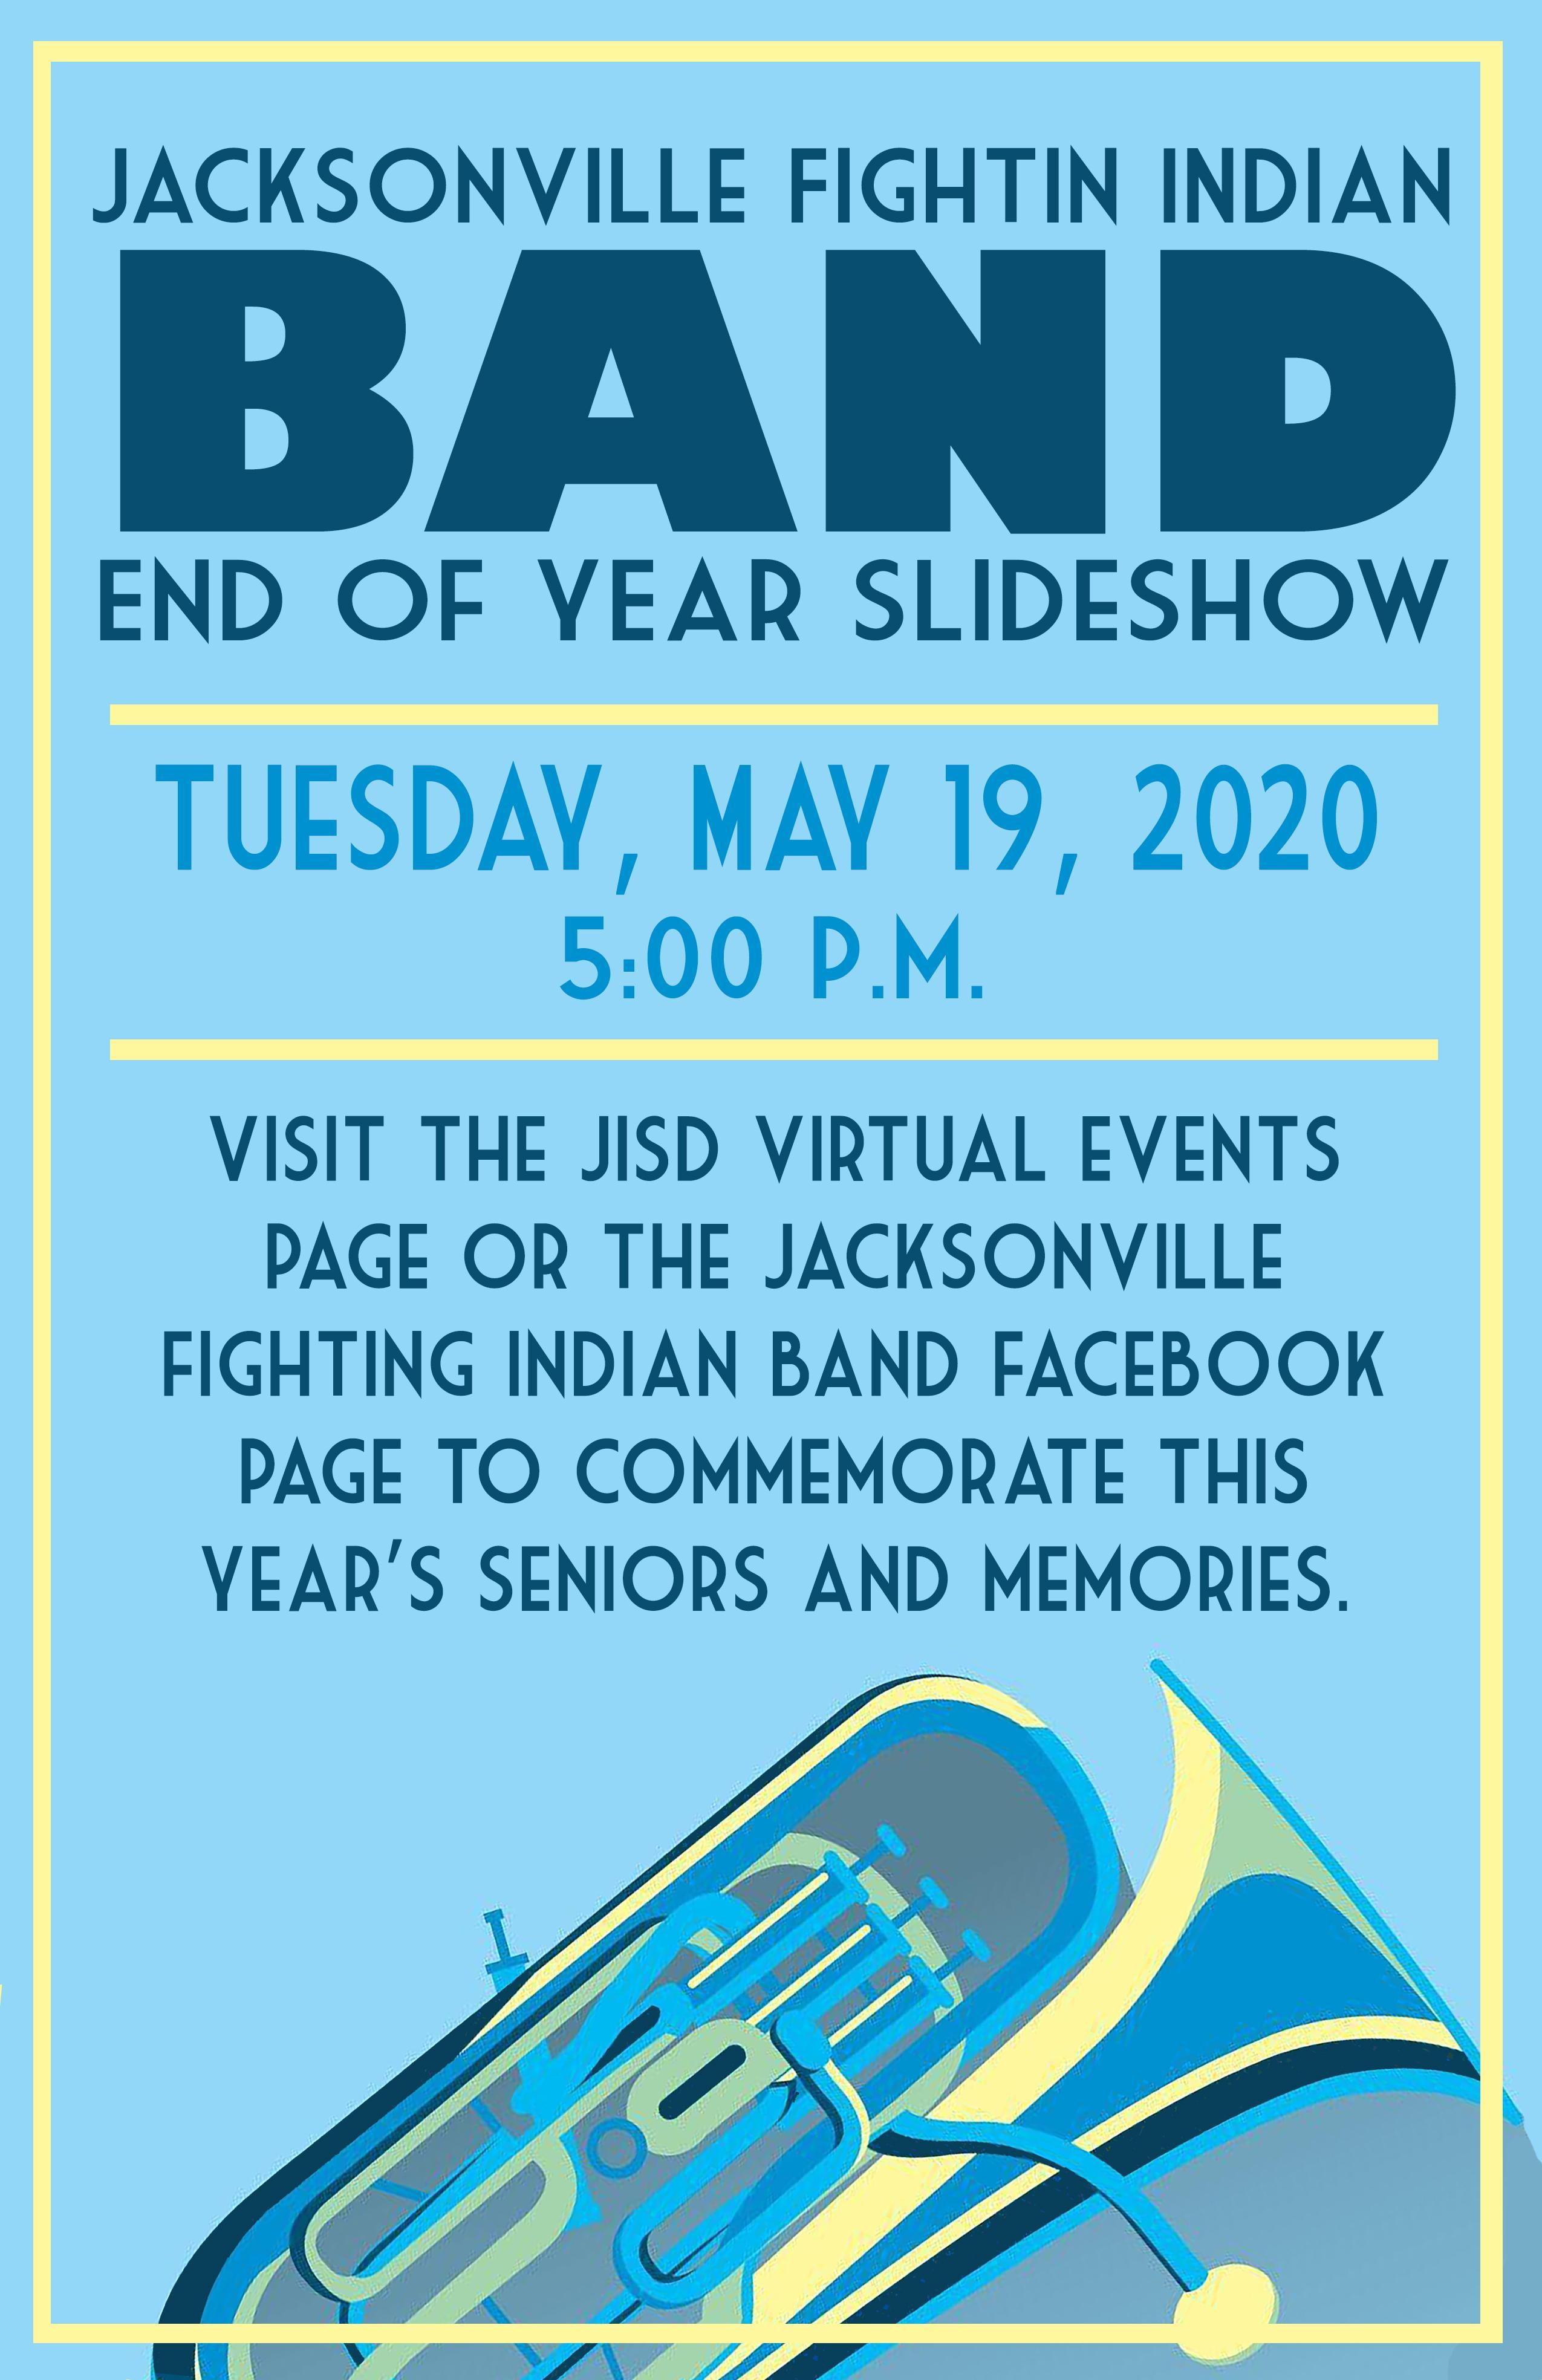 Band slideshow invitation